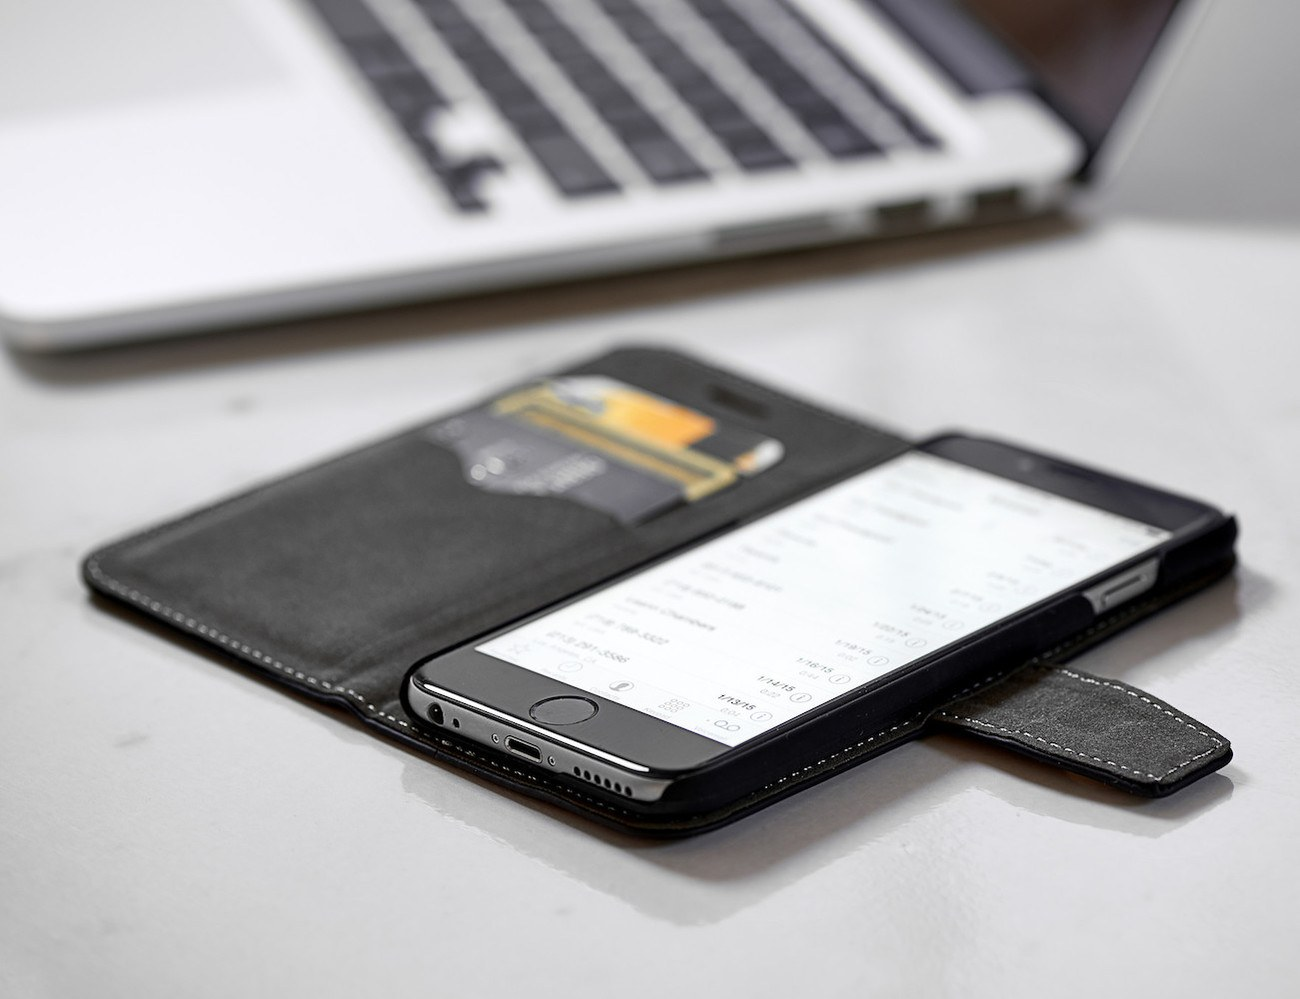 Safesleeve Case Protects Smartphone